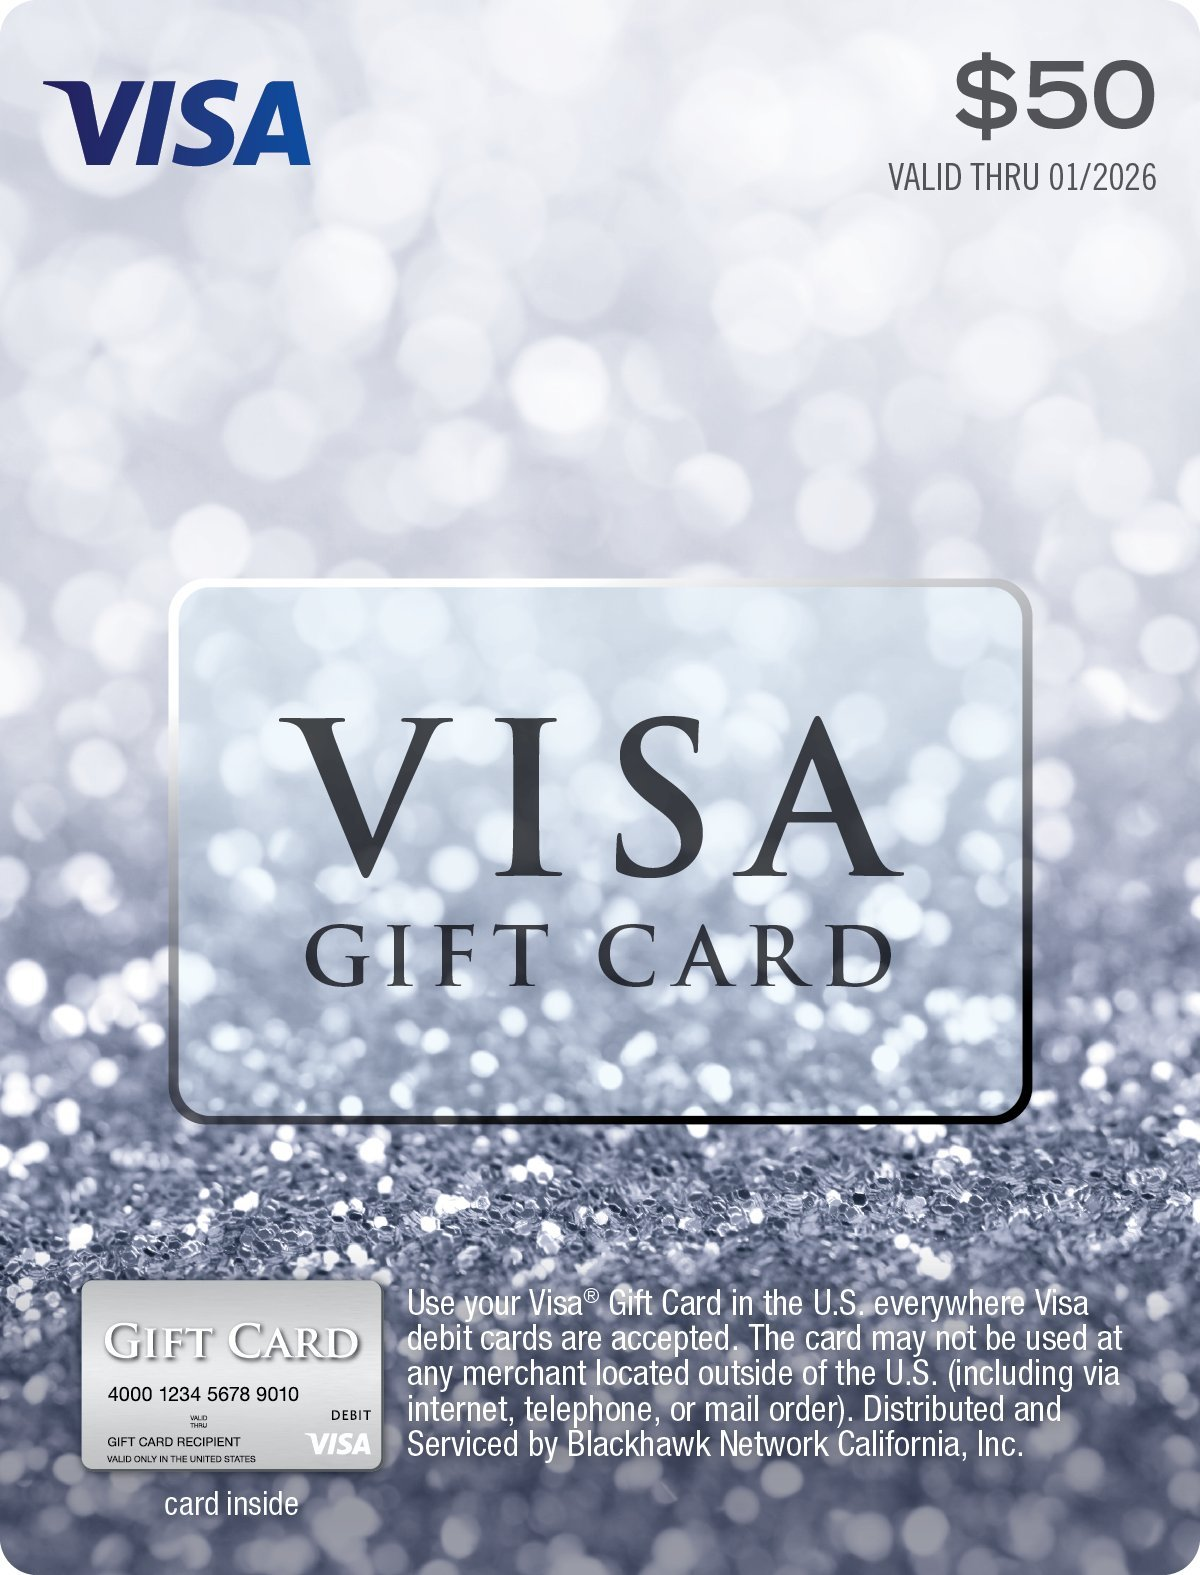 50 Visa Gift Card Plus 495 Purchase Fee Cards Itunes Us